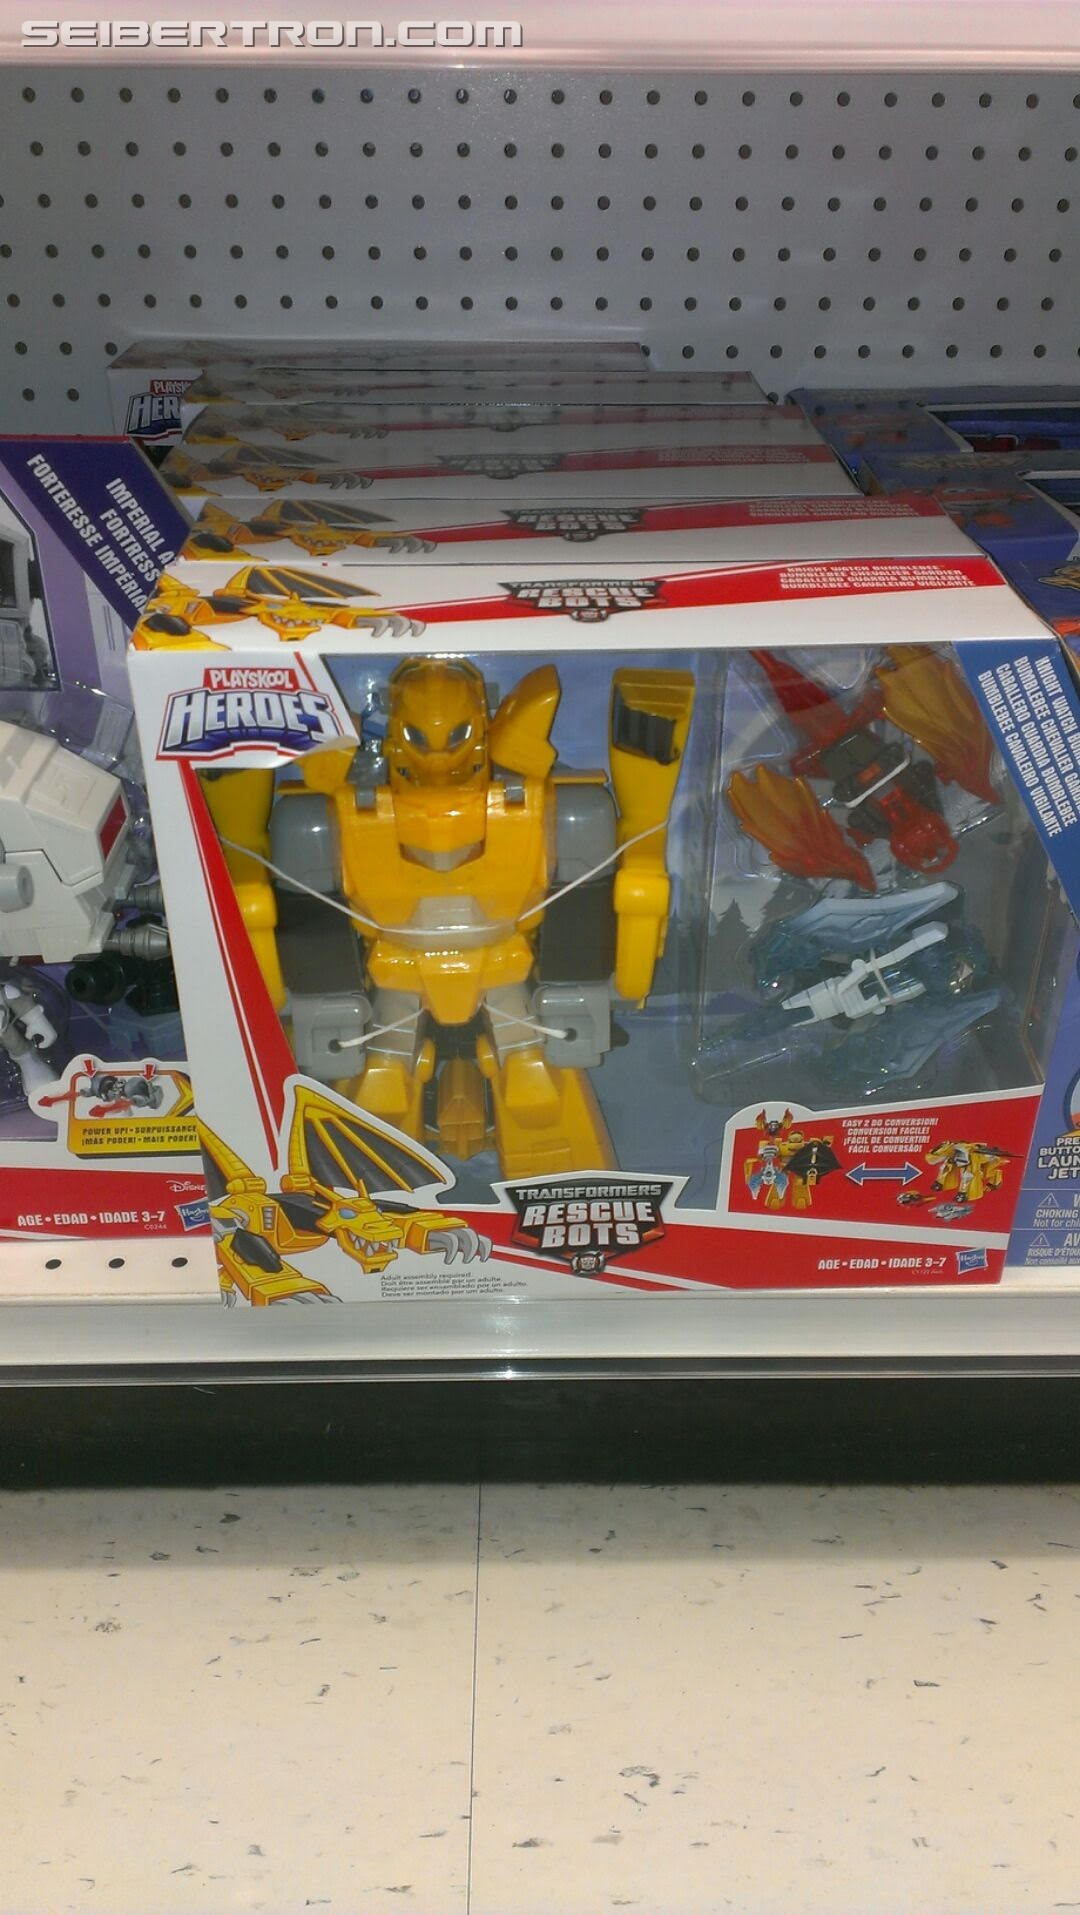 Transformers News: Transformers: Rescue Bots Knight Watch Bumblebee Found at Canadian Retail With Images of Box